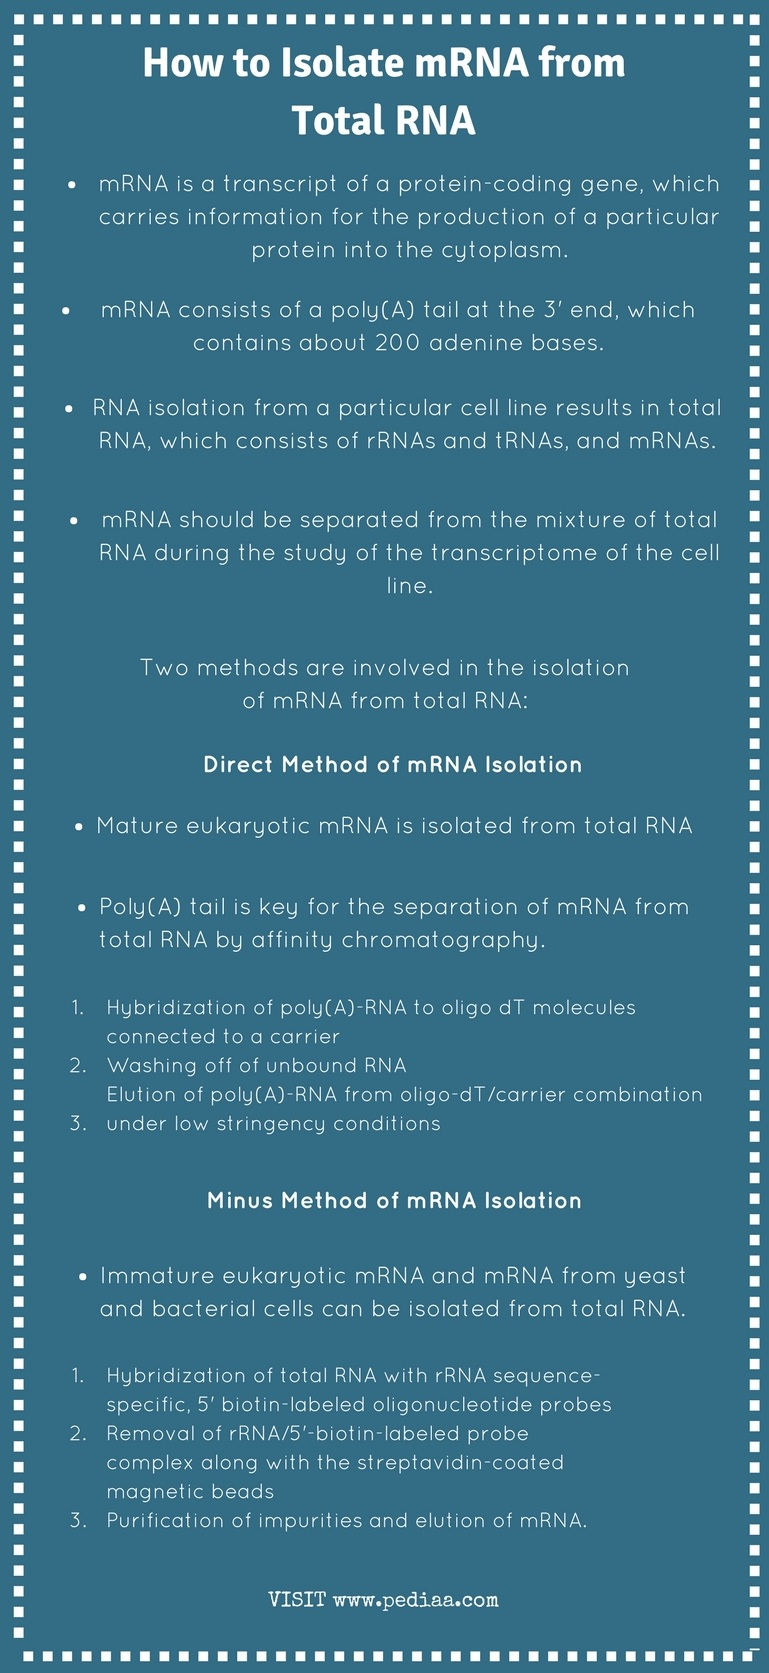 How to Isolate mRNA from Total RNA - Infographic